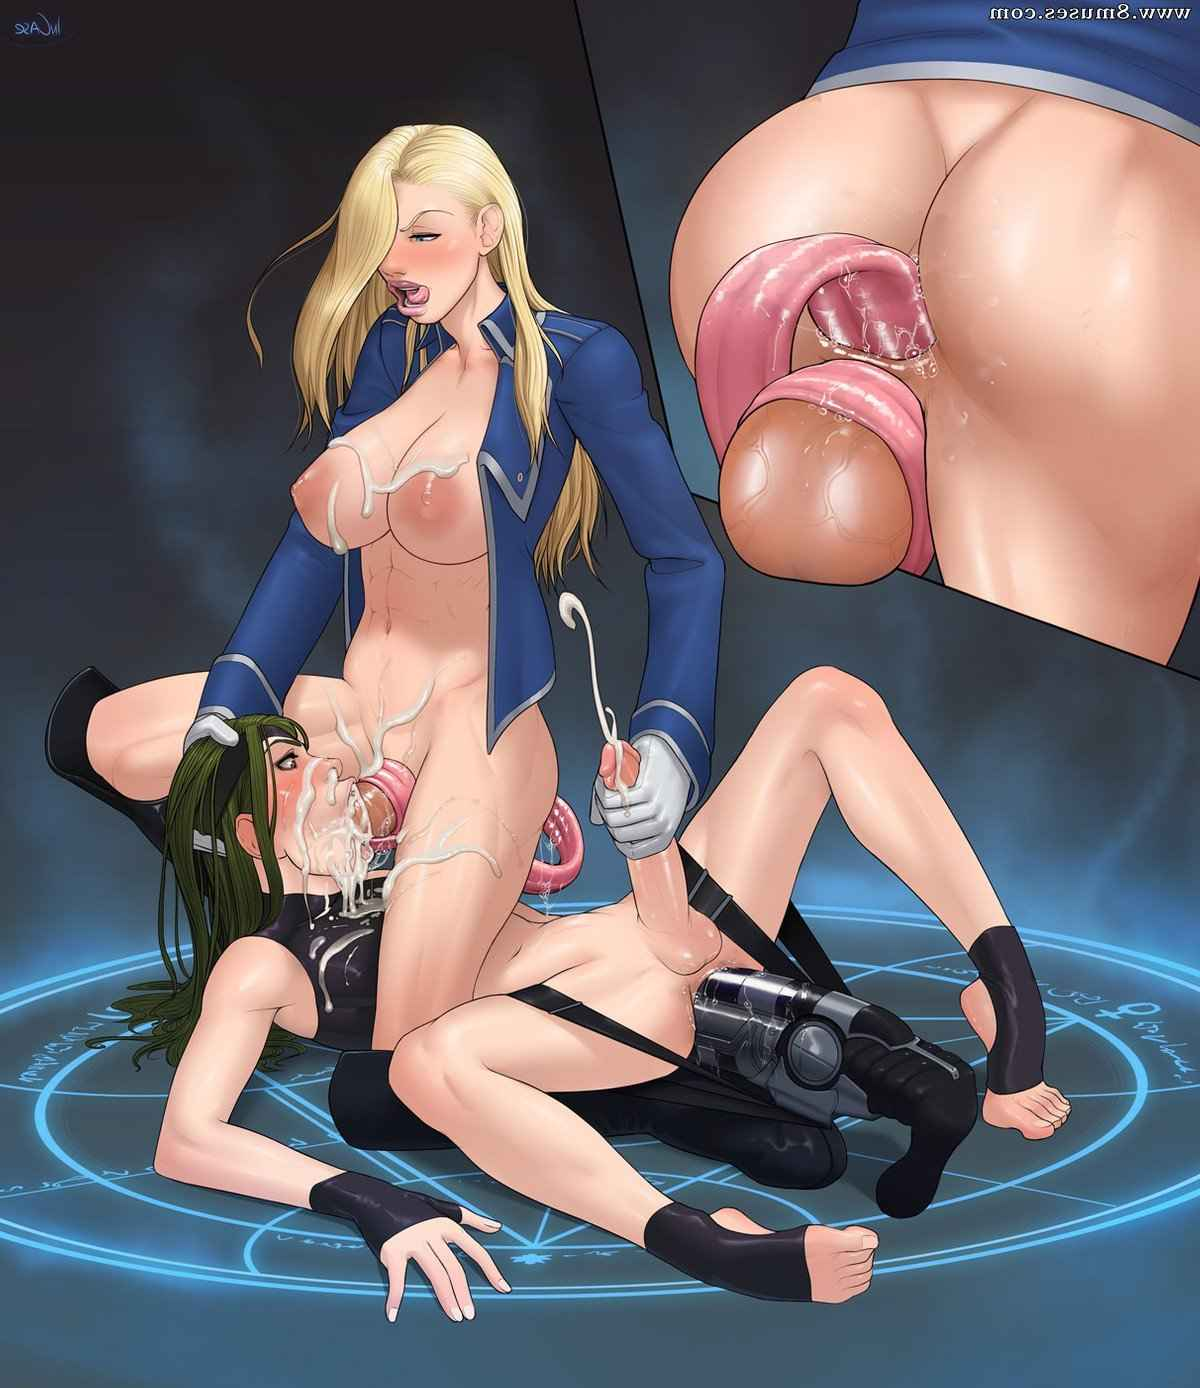 Incase-Comics/Artwork Artwork__8muses_-_Sex_and_Porn_Comics_260.jpg